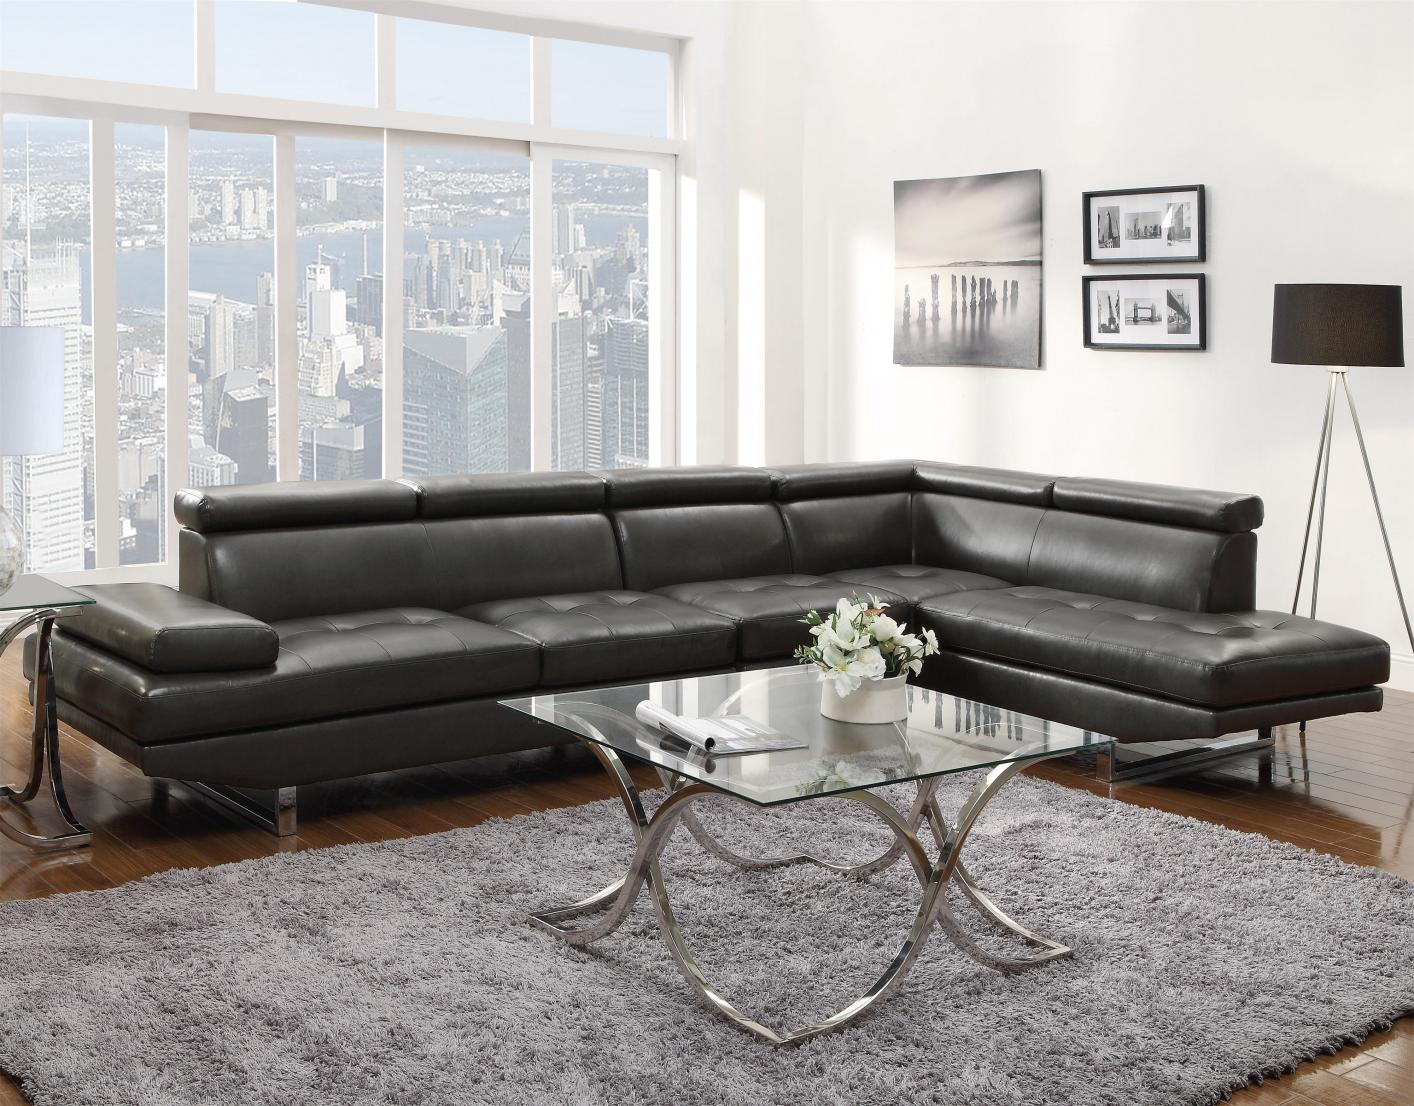 Grey Leather Sectional Sofa Steal A Sofa Furniture Outlet Los